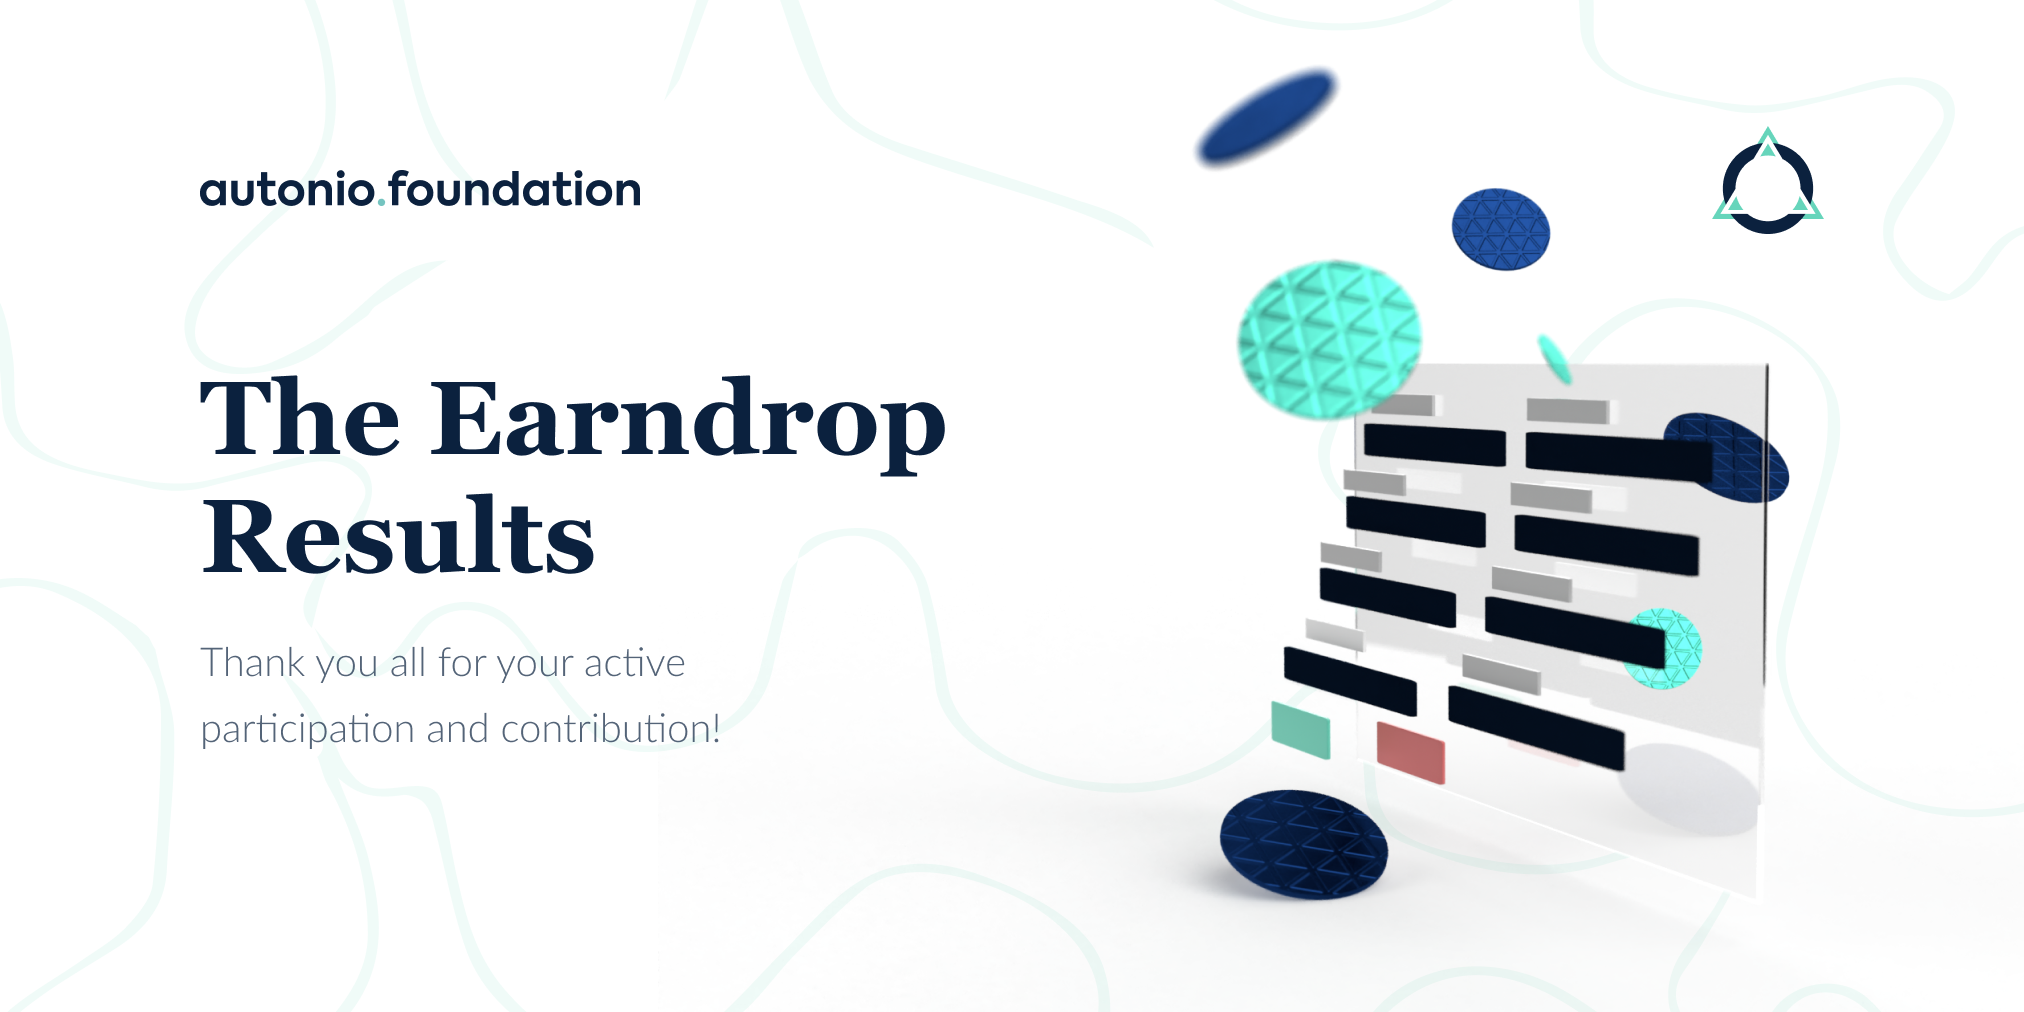 The Earndrop Results are in